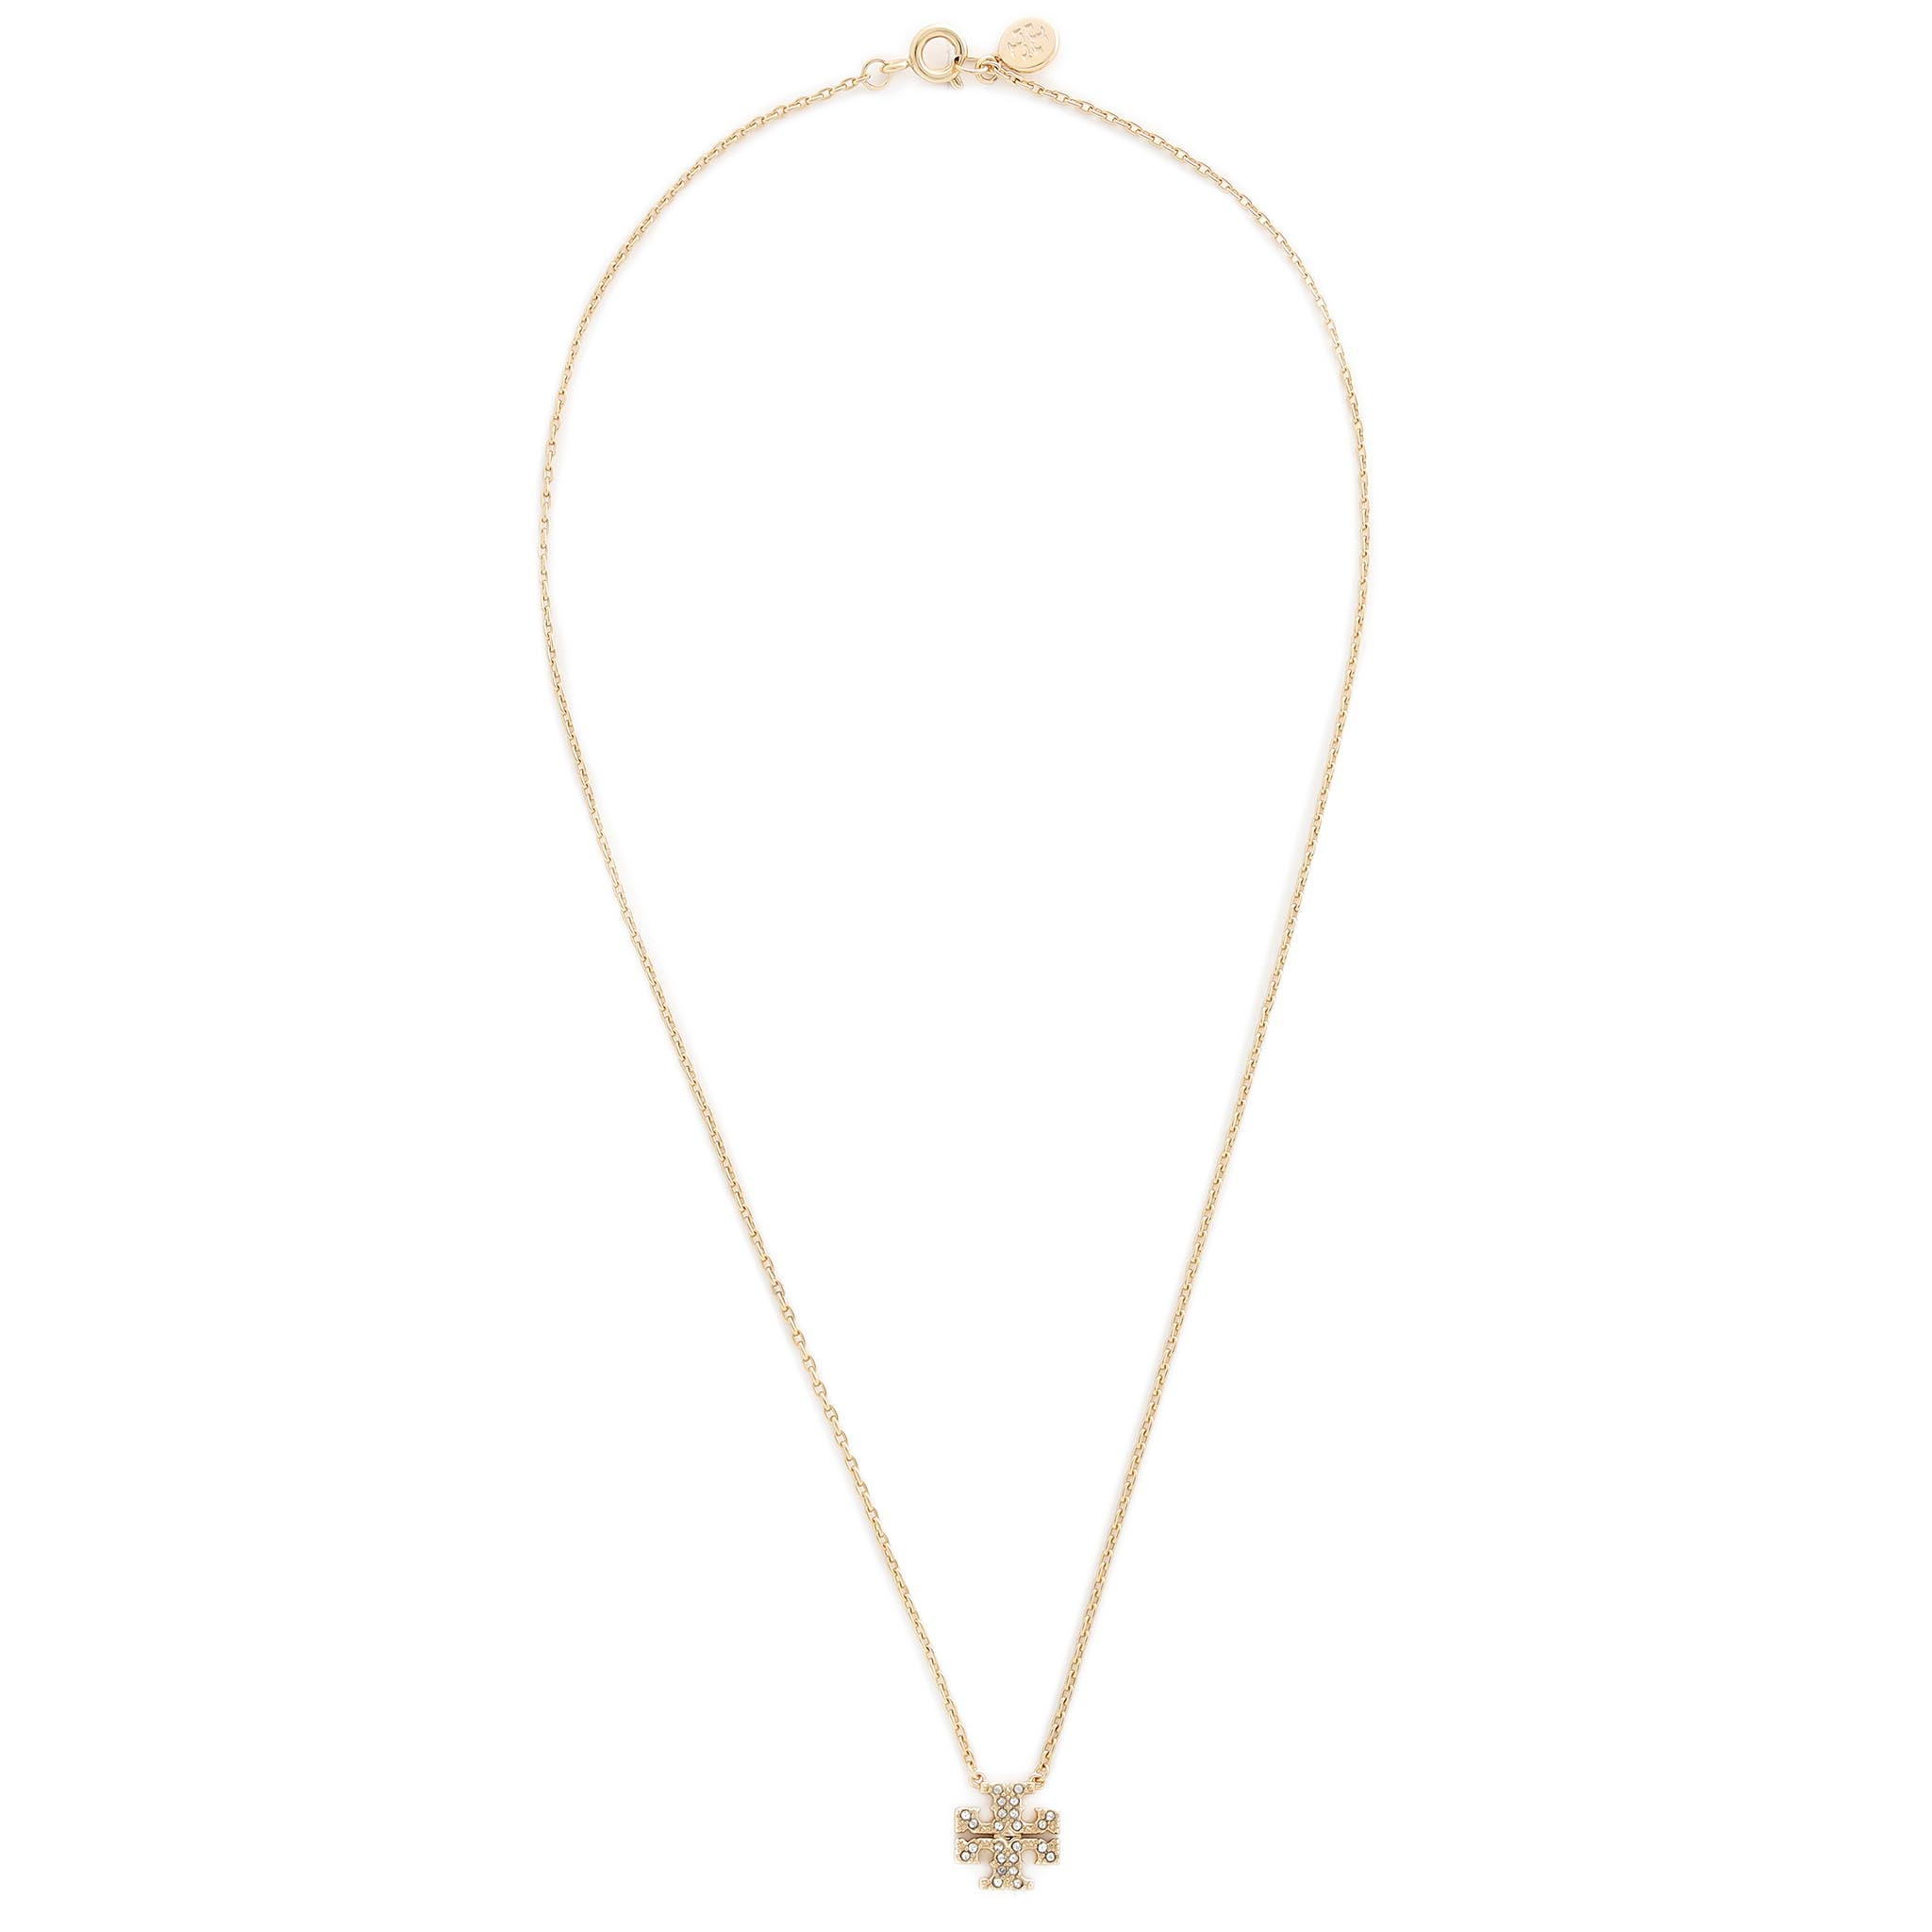 Colier TORY BURCH - Kira Pave Delicate Necklace 61725 Tory Gold/Crystal 745